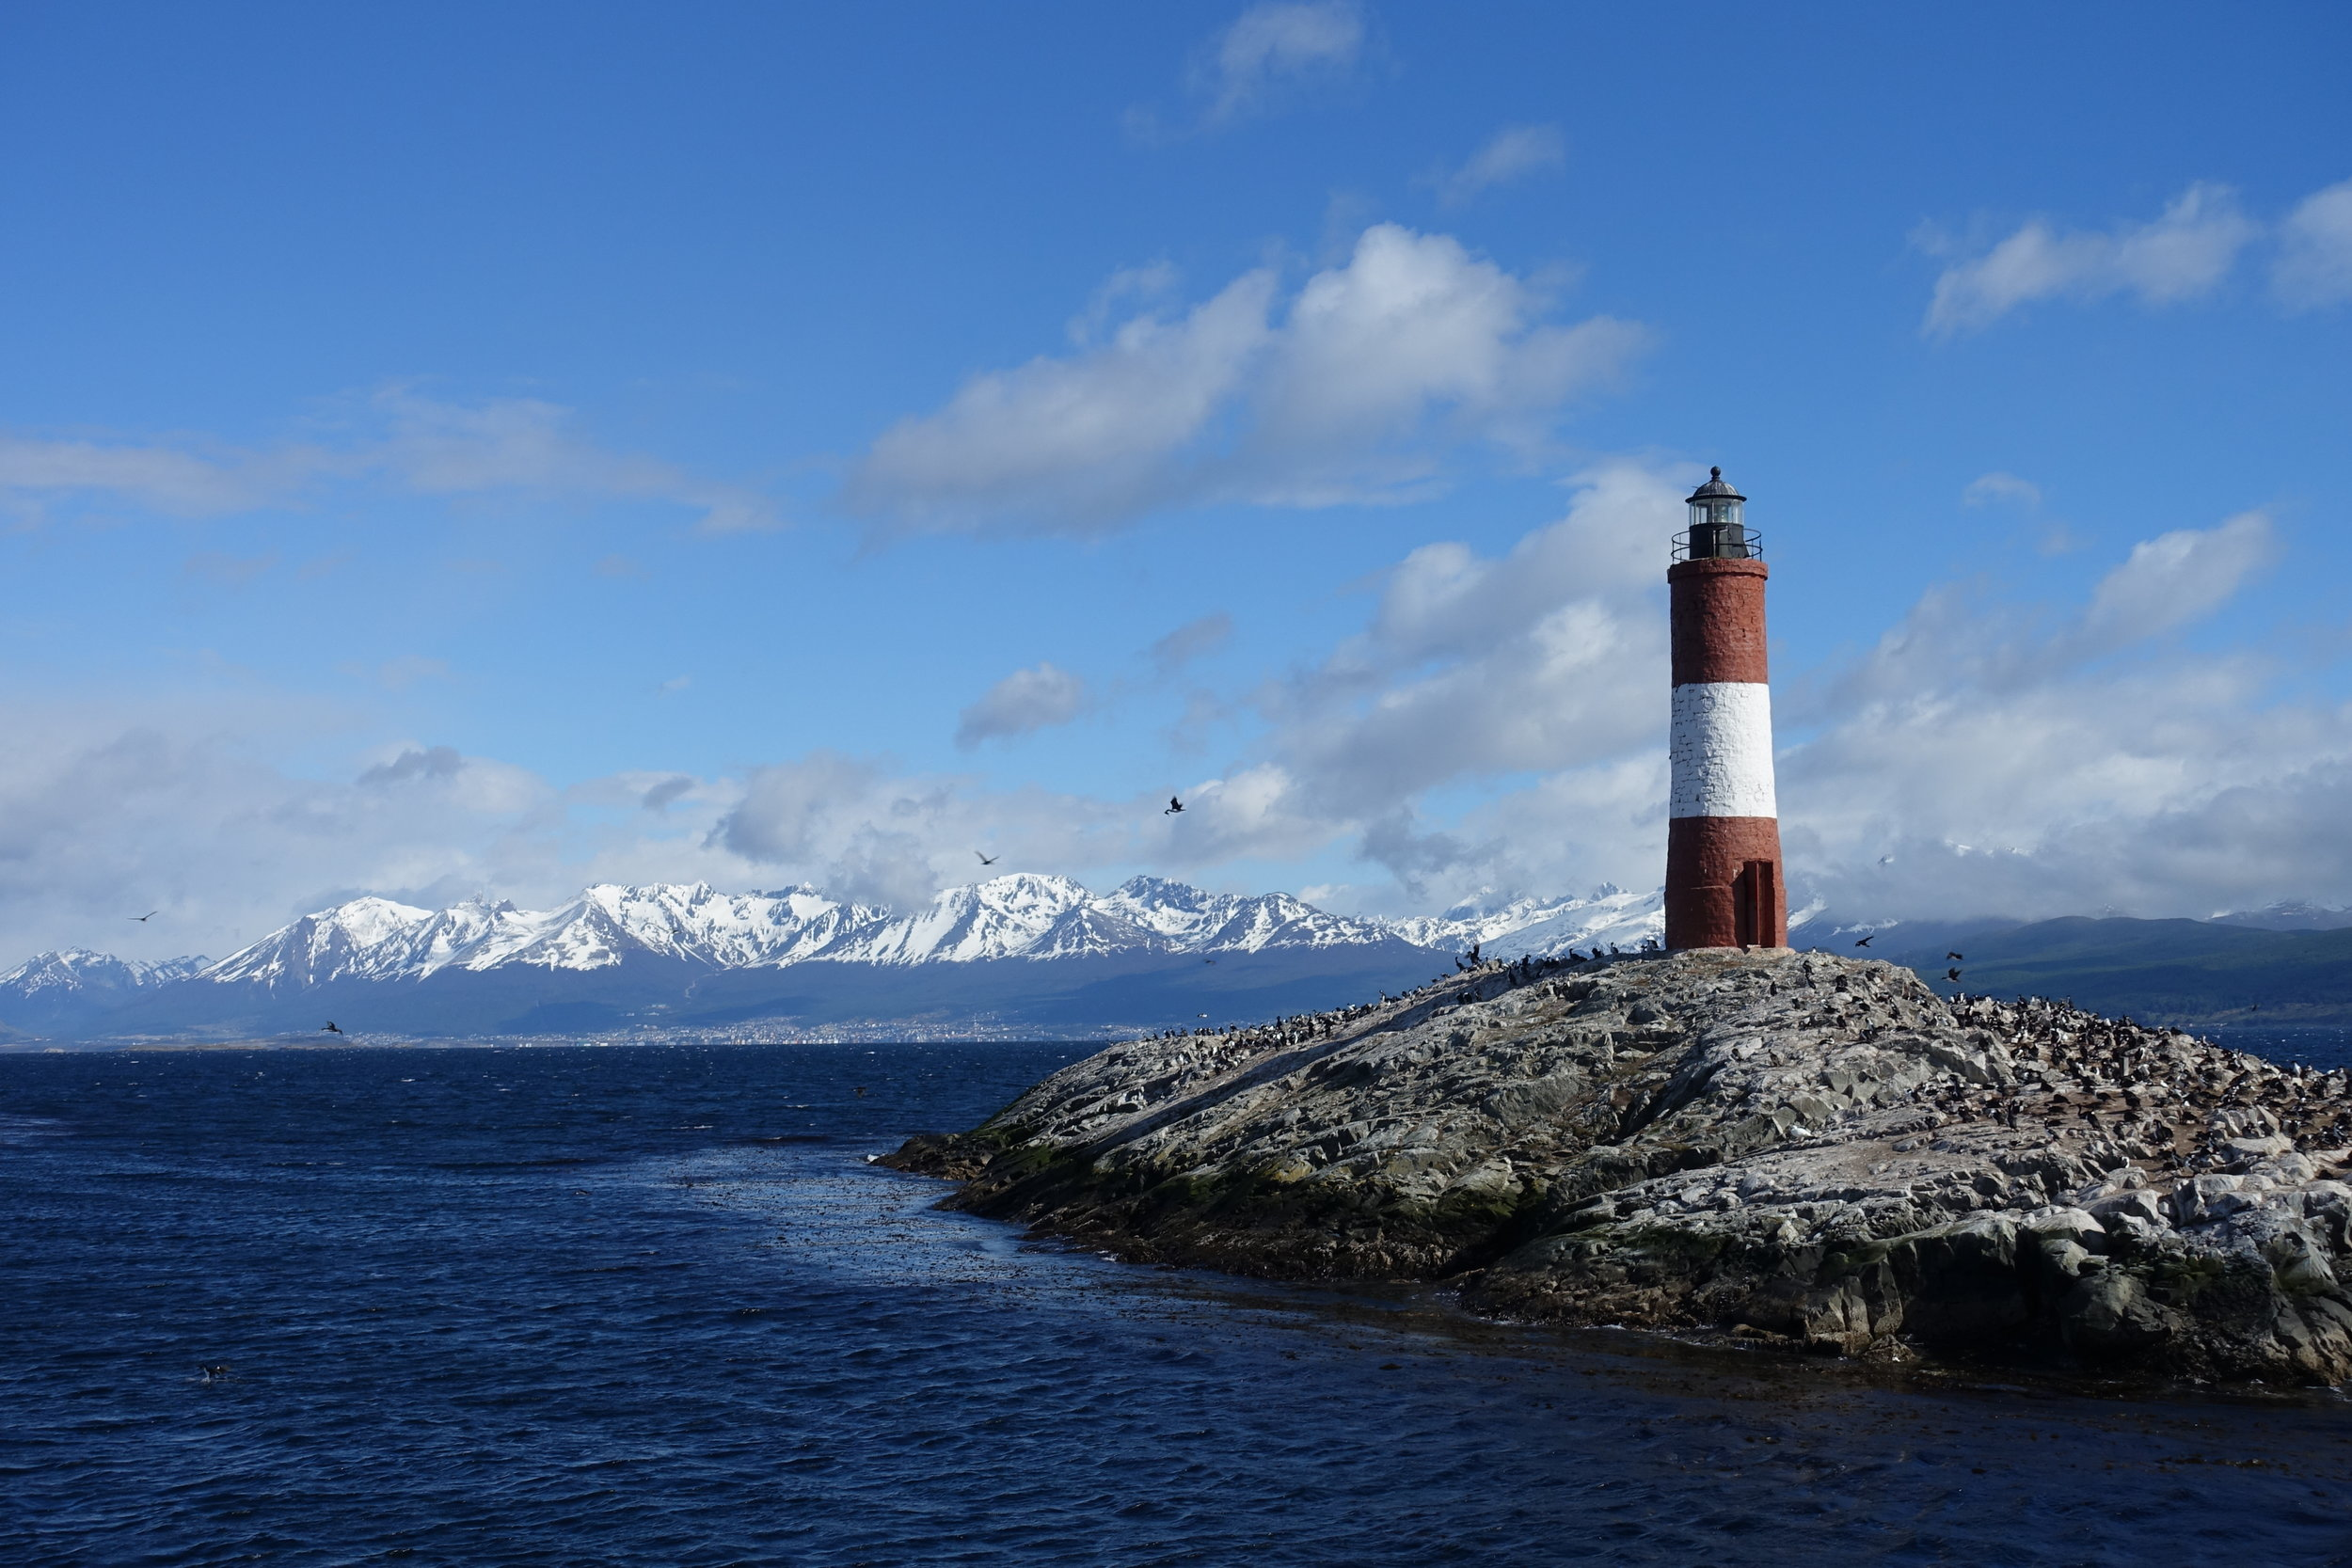 Visit Ushuaia Argentina Sail the Beagle Channel